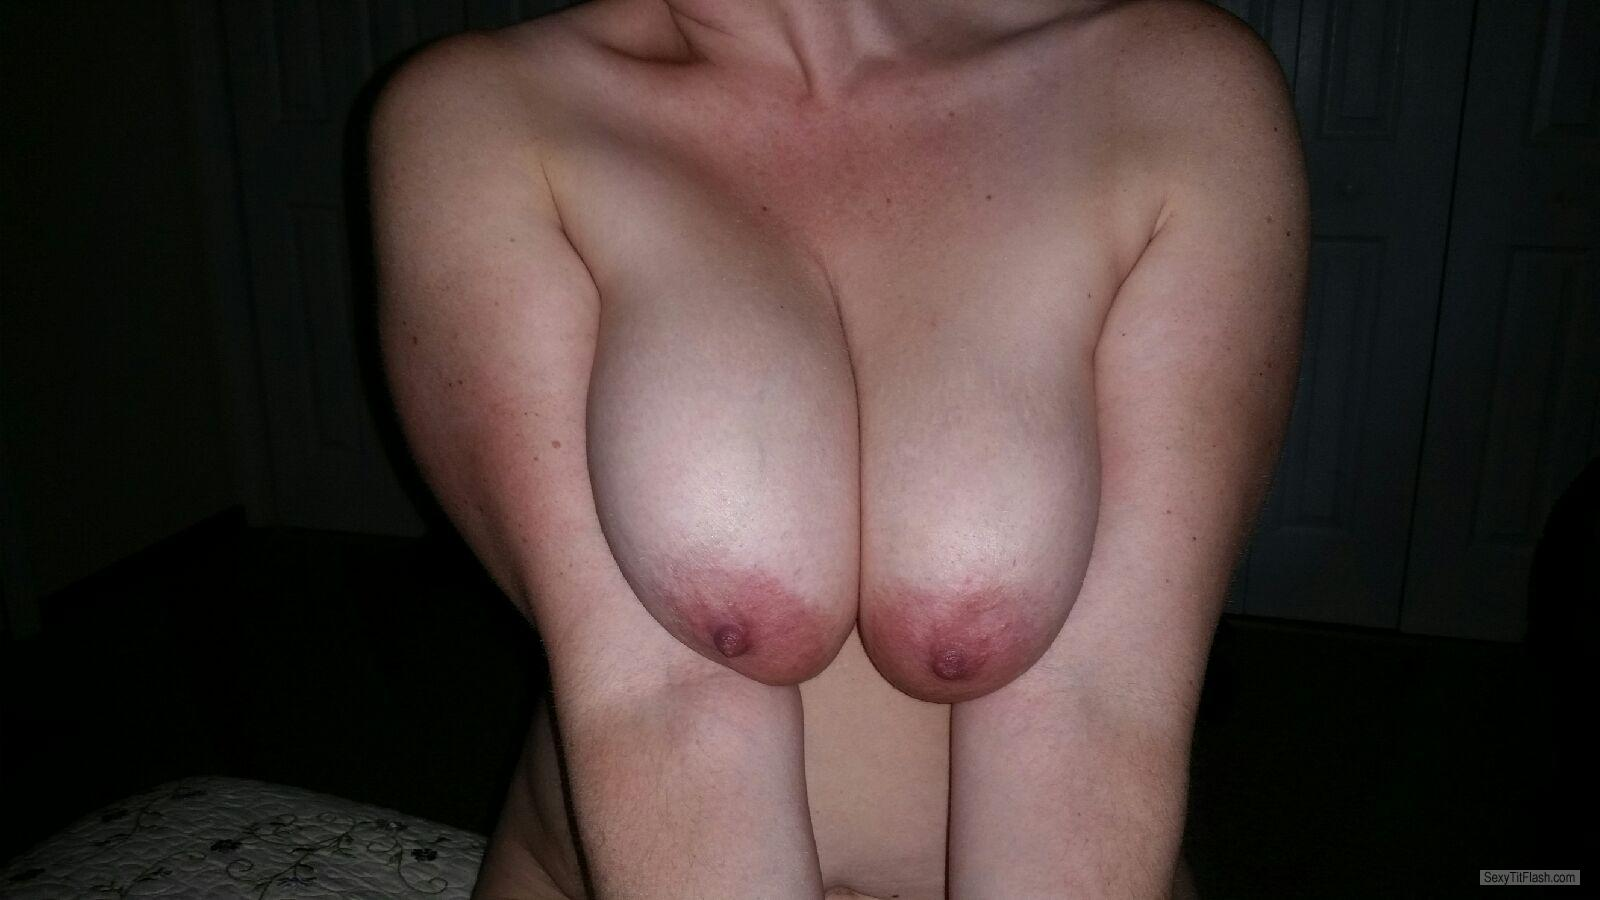 Tit Flash: Wife's Extremely Big Tits - Nh_shared from United States